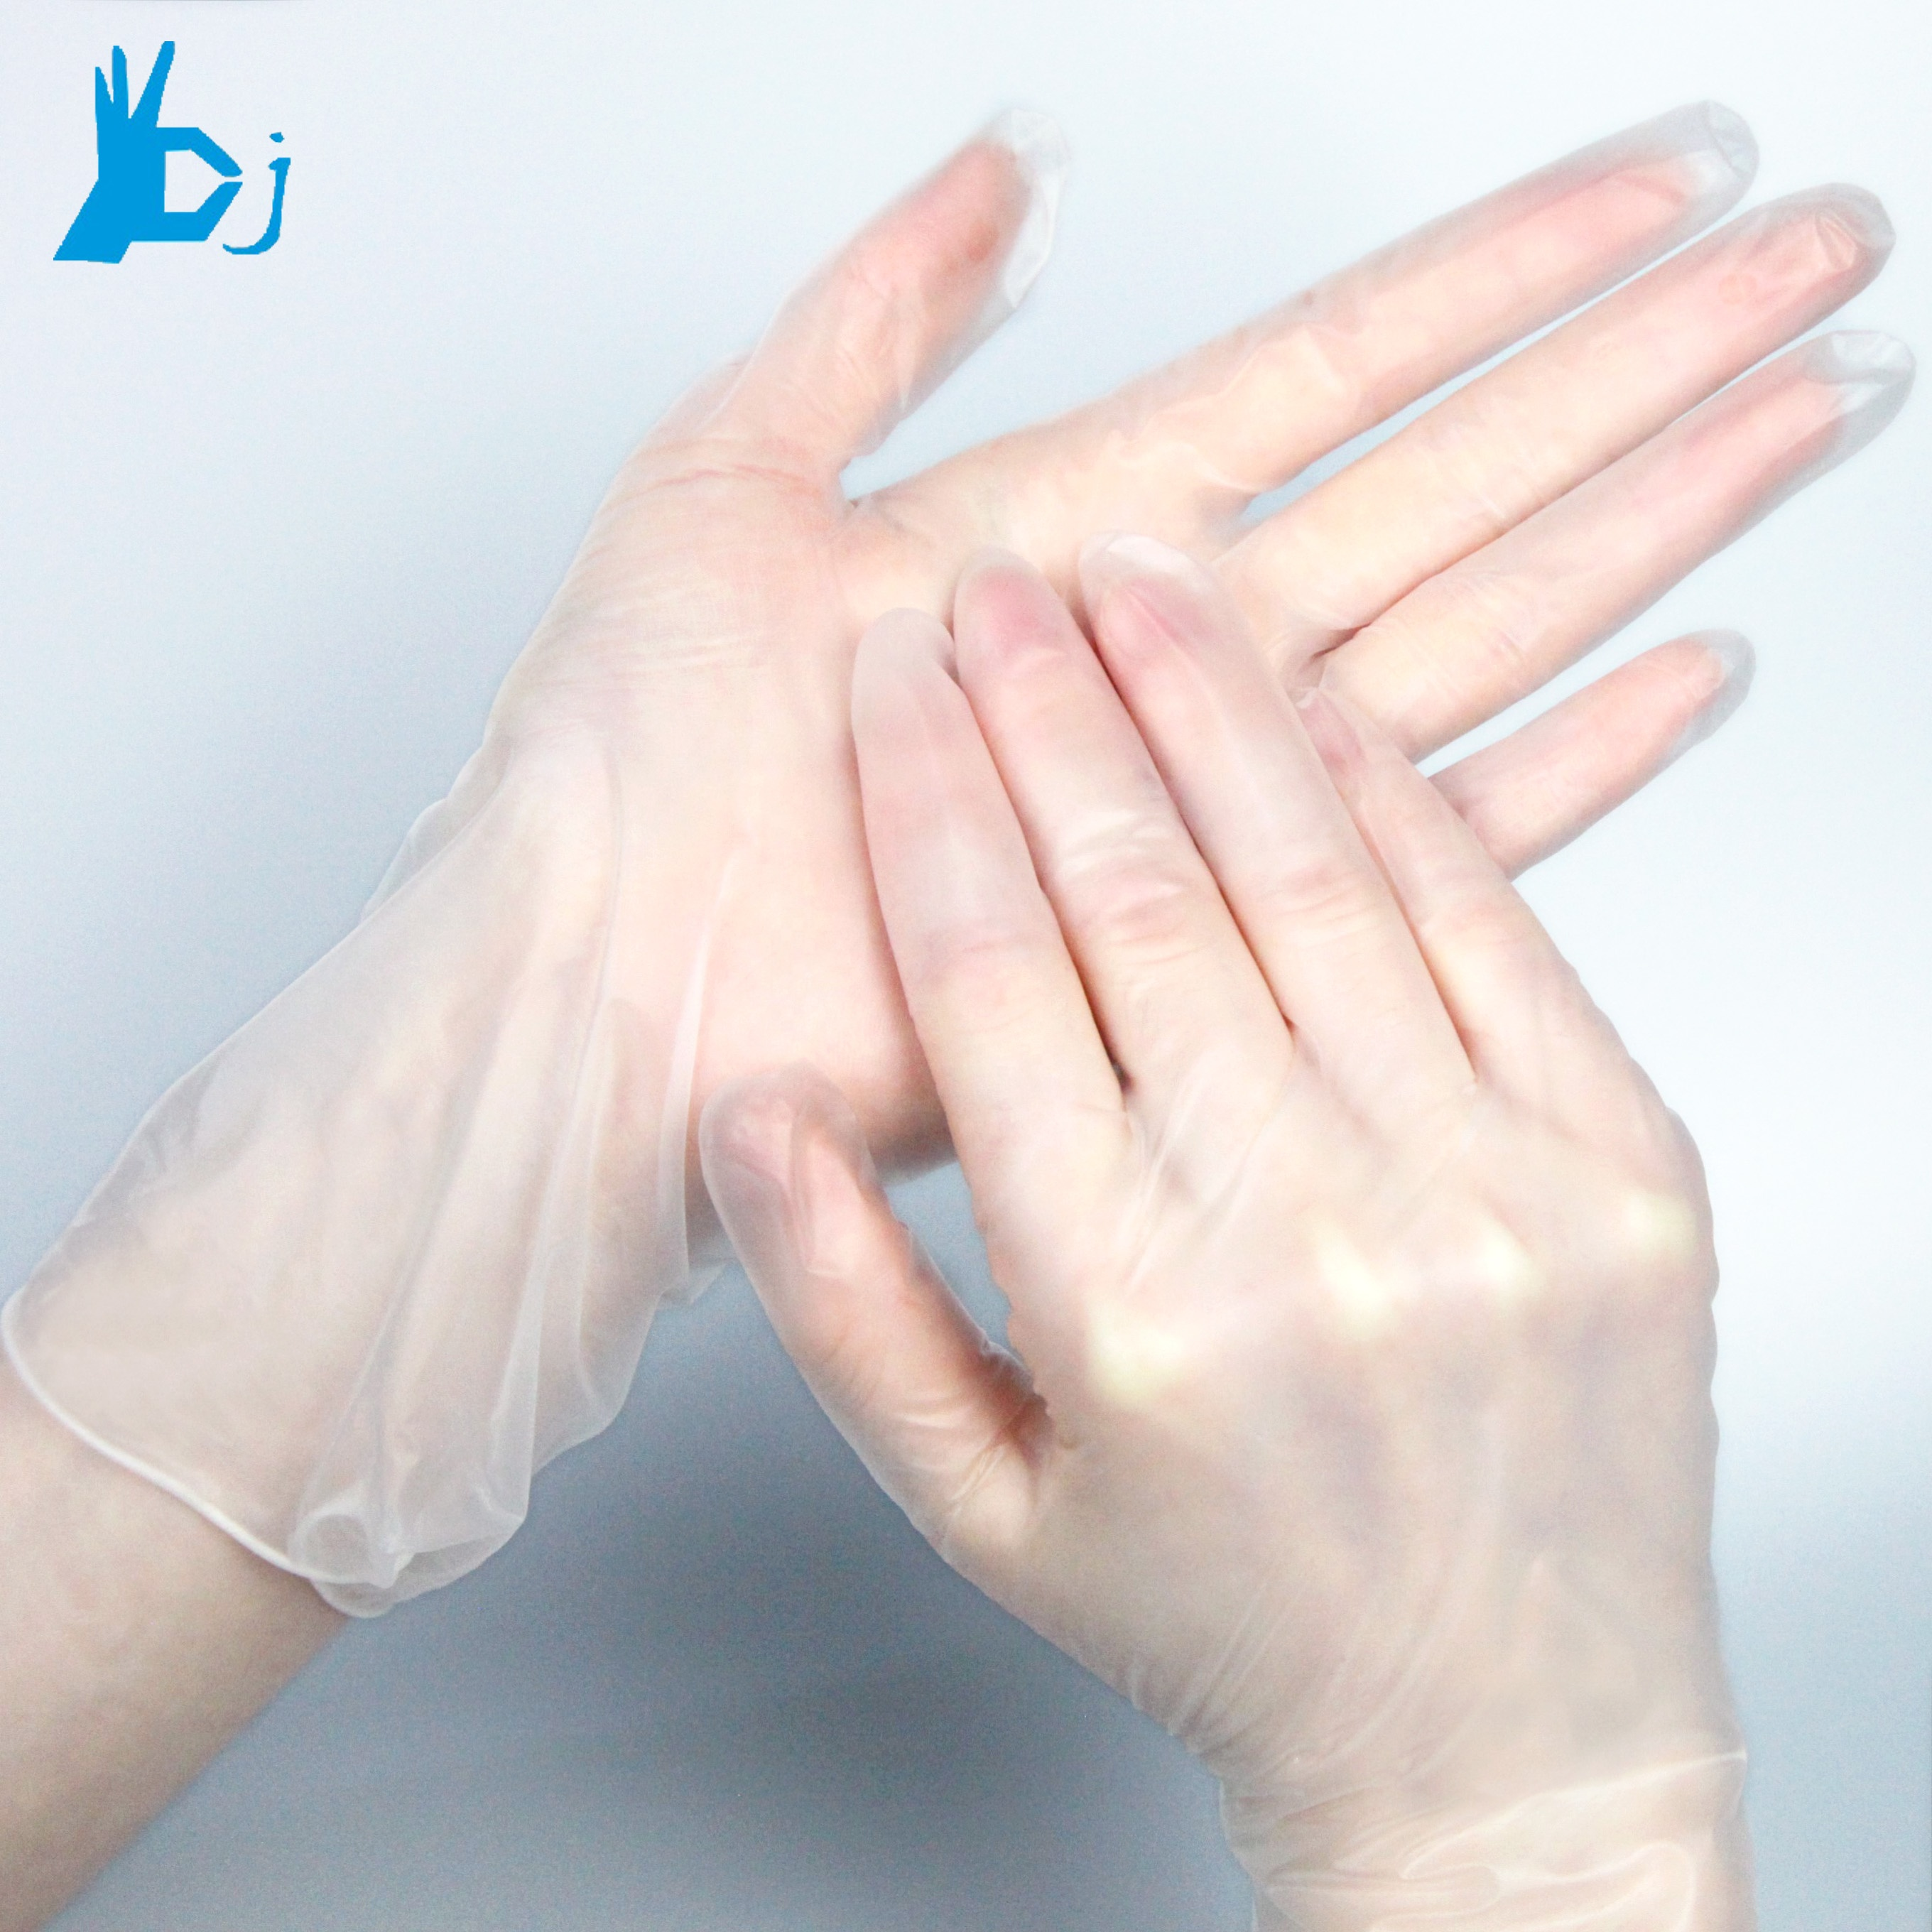 Latex free medical disposable gloves / Powder free vinyl gloves